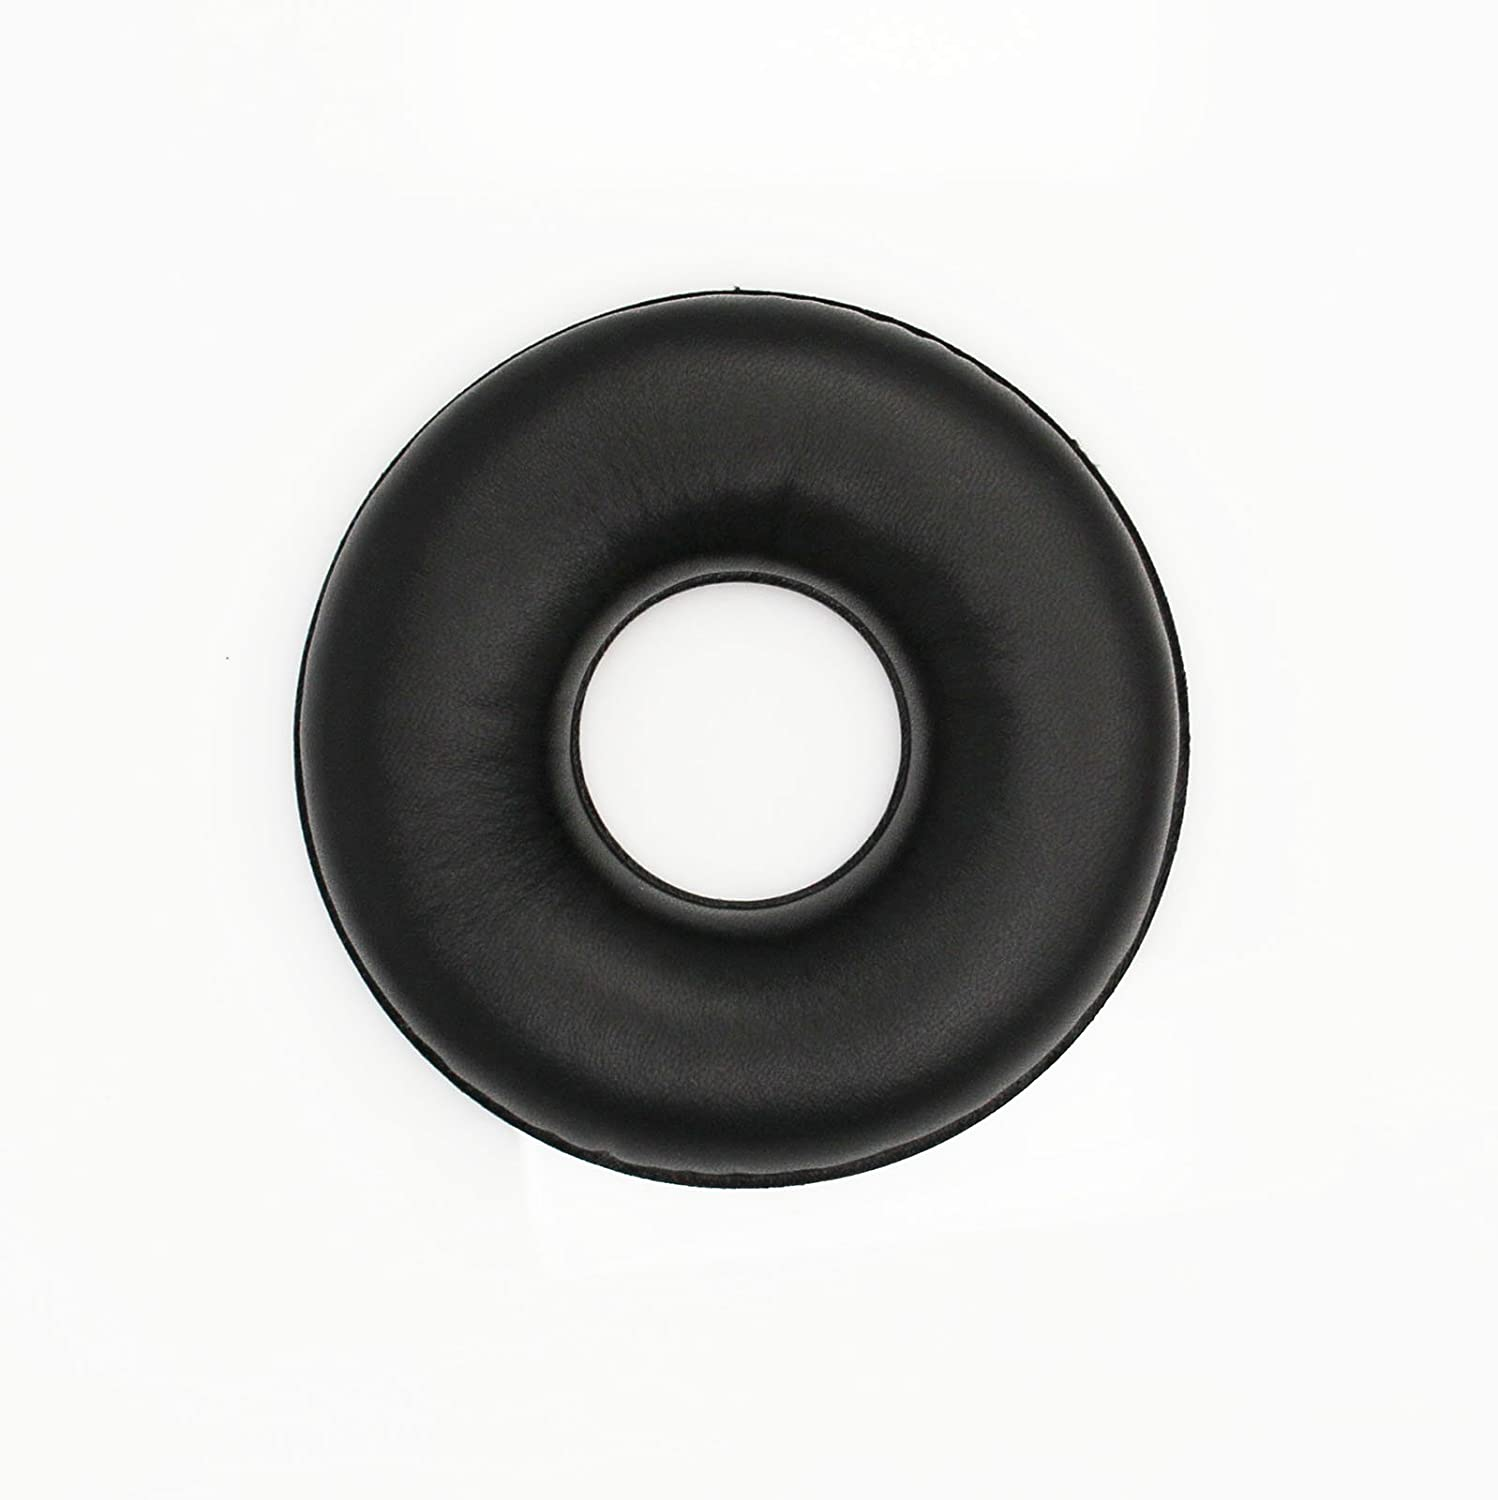 Replacement Ear Pads for AKG K121 K121S K141 MK II K142 HD Headset Headphones Leather Finished